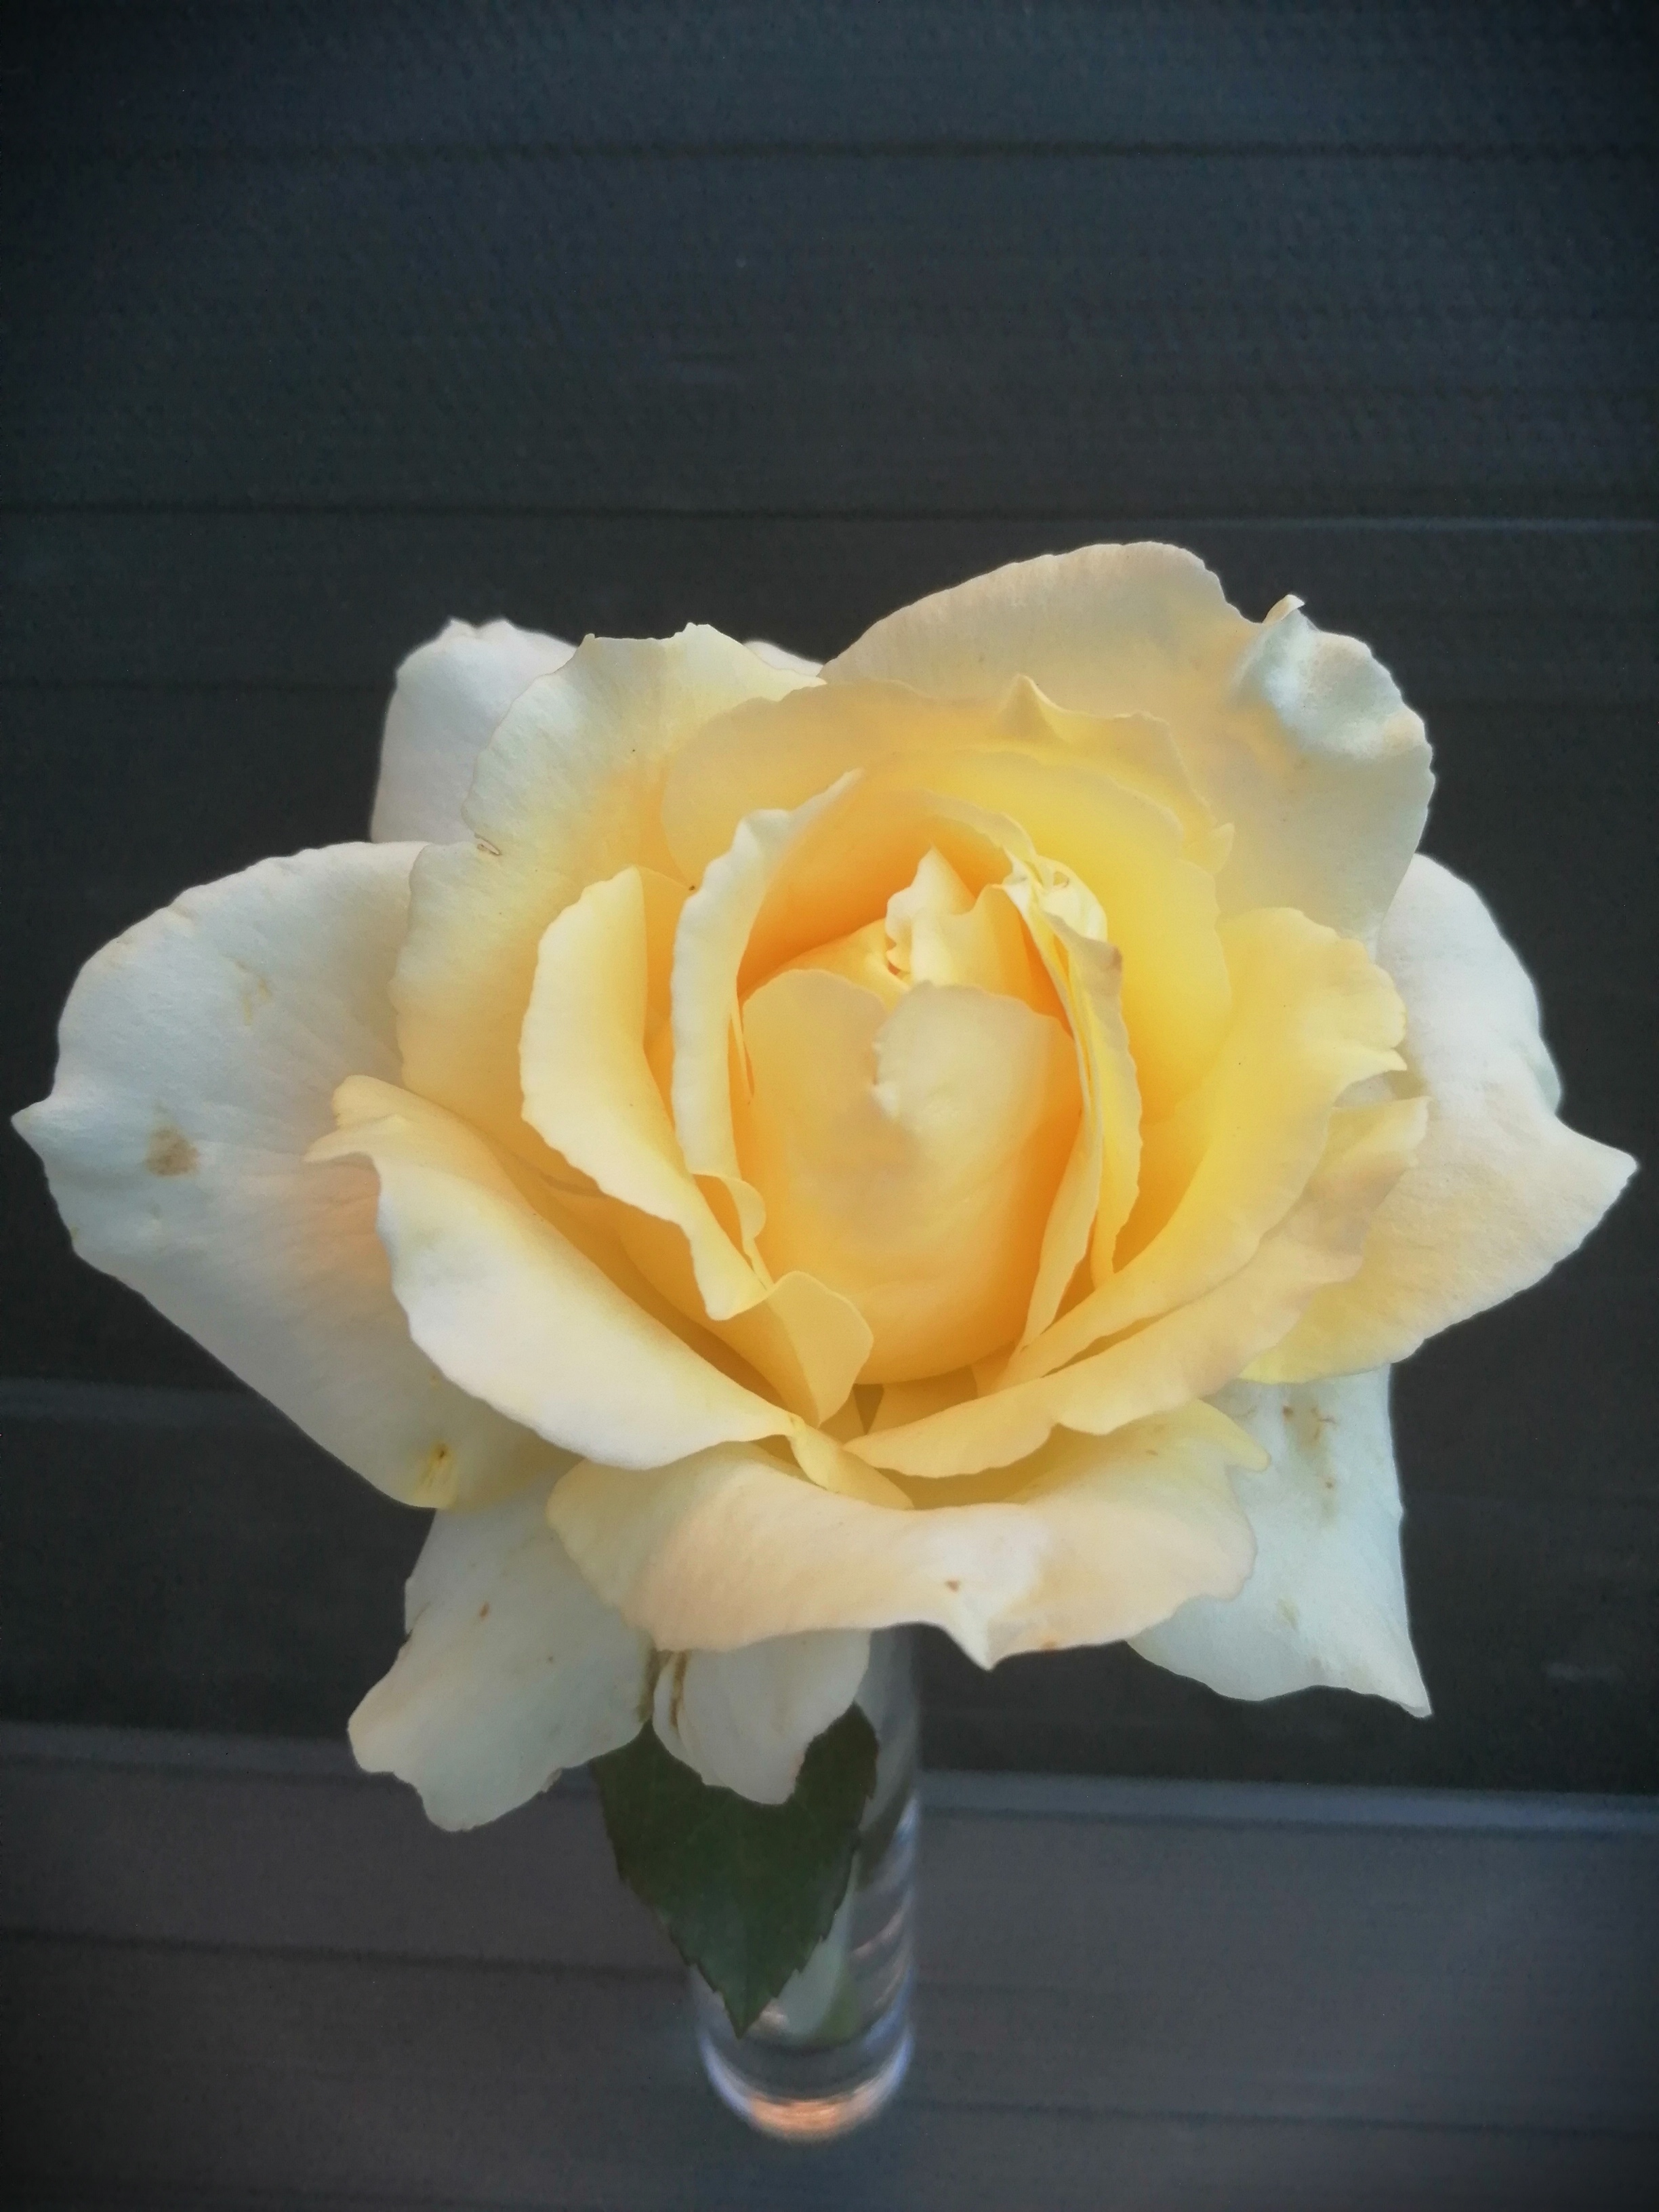 Rose, one specimen bloom